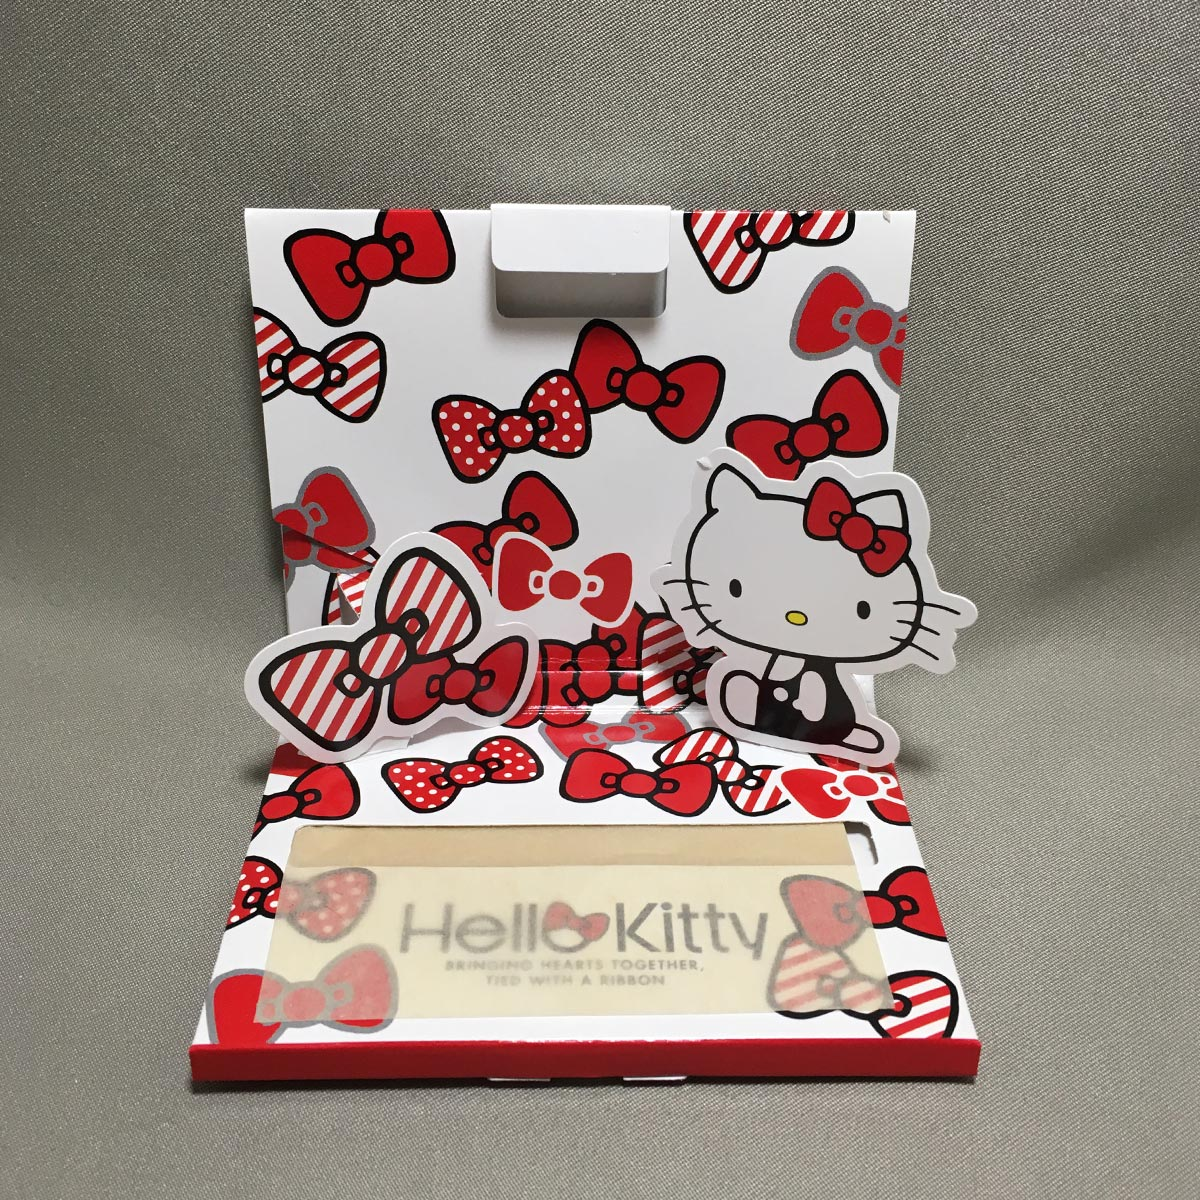 Hello Kitty Oil Blotting Paper - Opened view